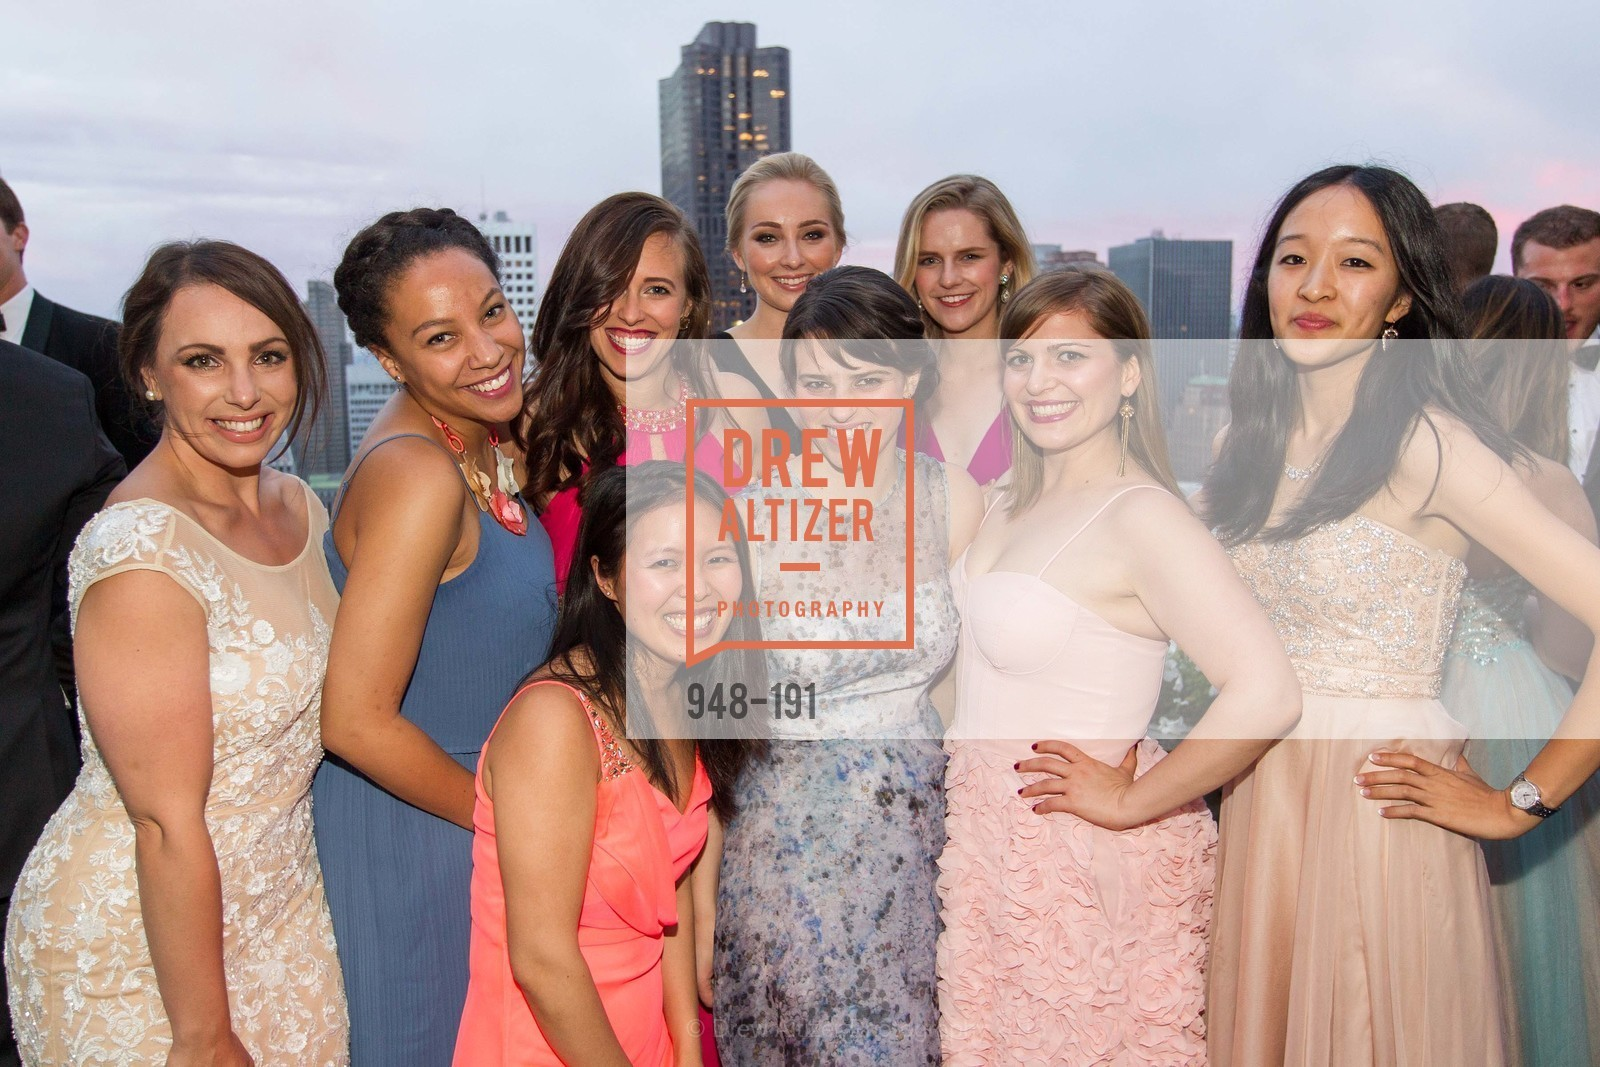 Genevieve Haight, Janice On, Bailey Douglass, Morgan Barnes, Jonna Constantine, Spinsters of San Francisco Annual Ball 2015, Penthouse at the Fairmont San Francisco (950 Mason Street). 950 Mason Street, June 28th, 2015,Drew Altizer, Drew Altizer Photography, full-service agency, private events, San Francisco photographer, photographer california